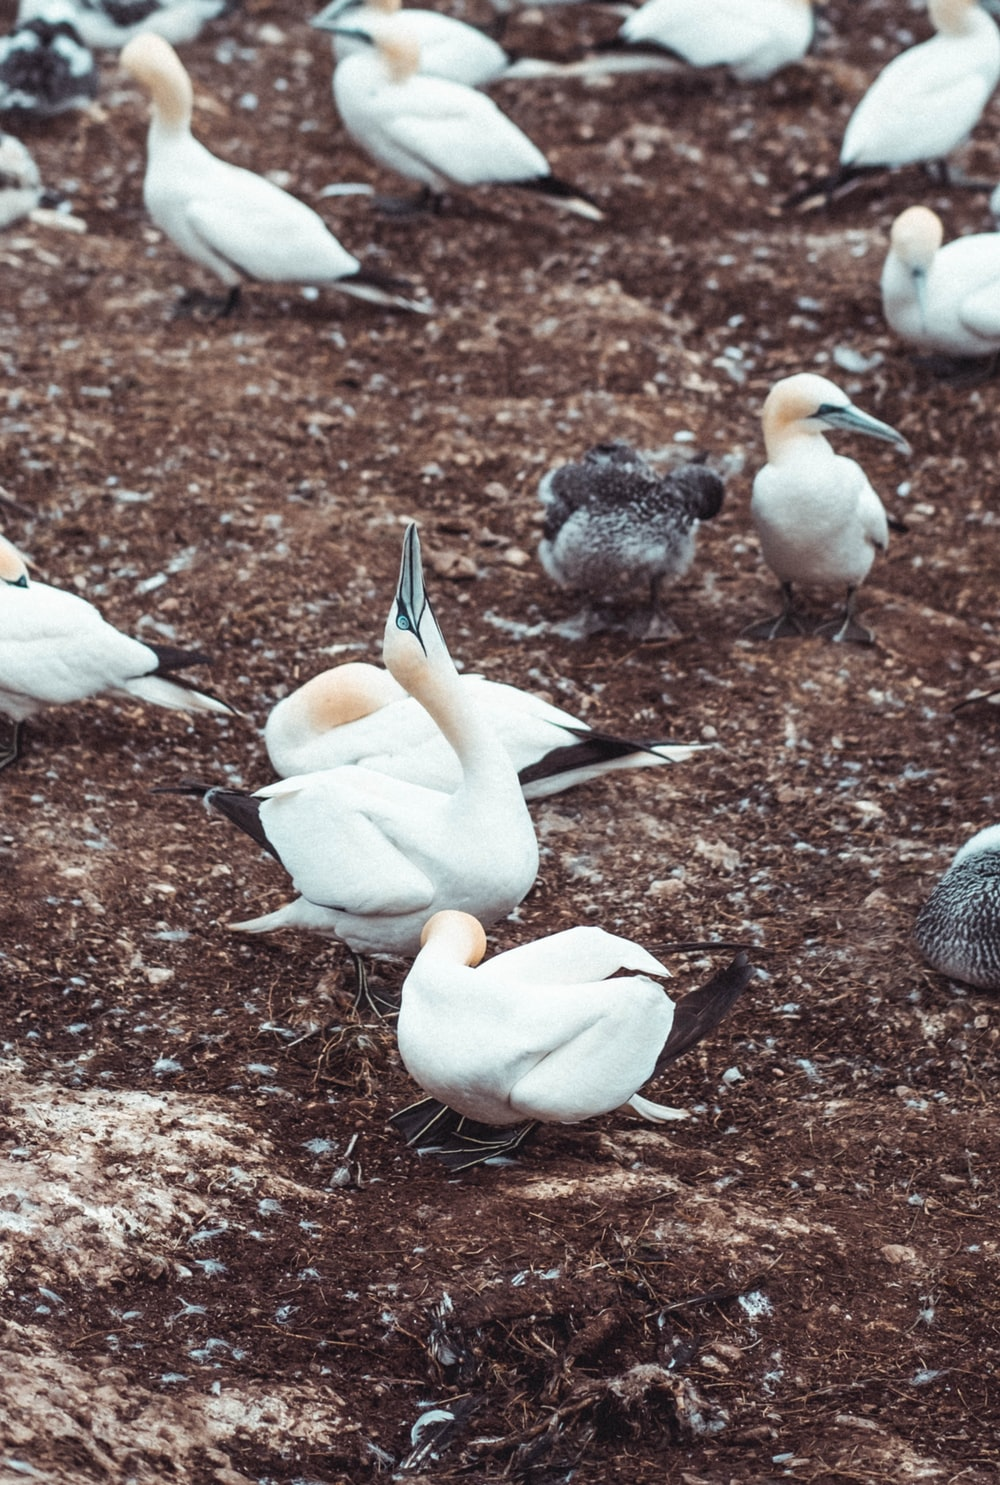 white and black birds on ground during daytime